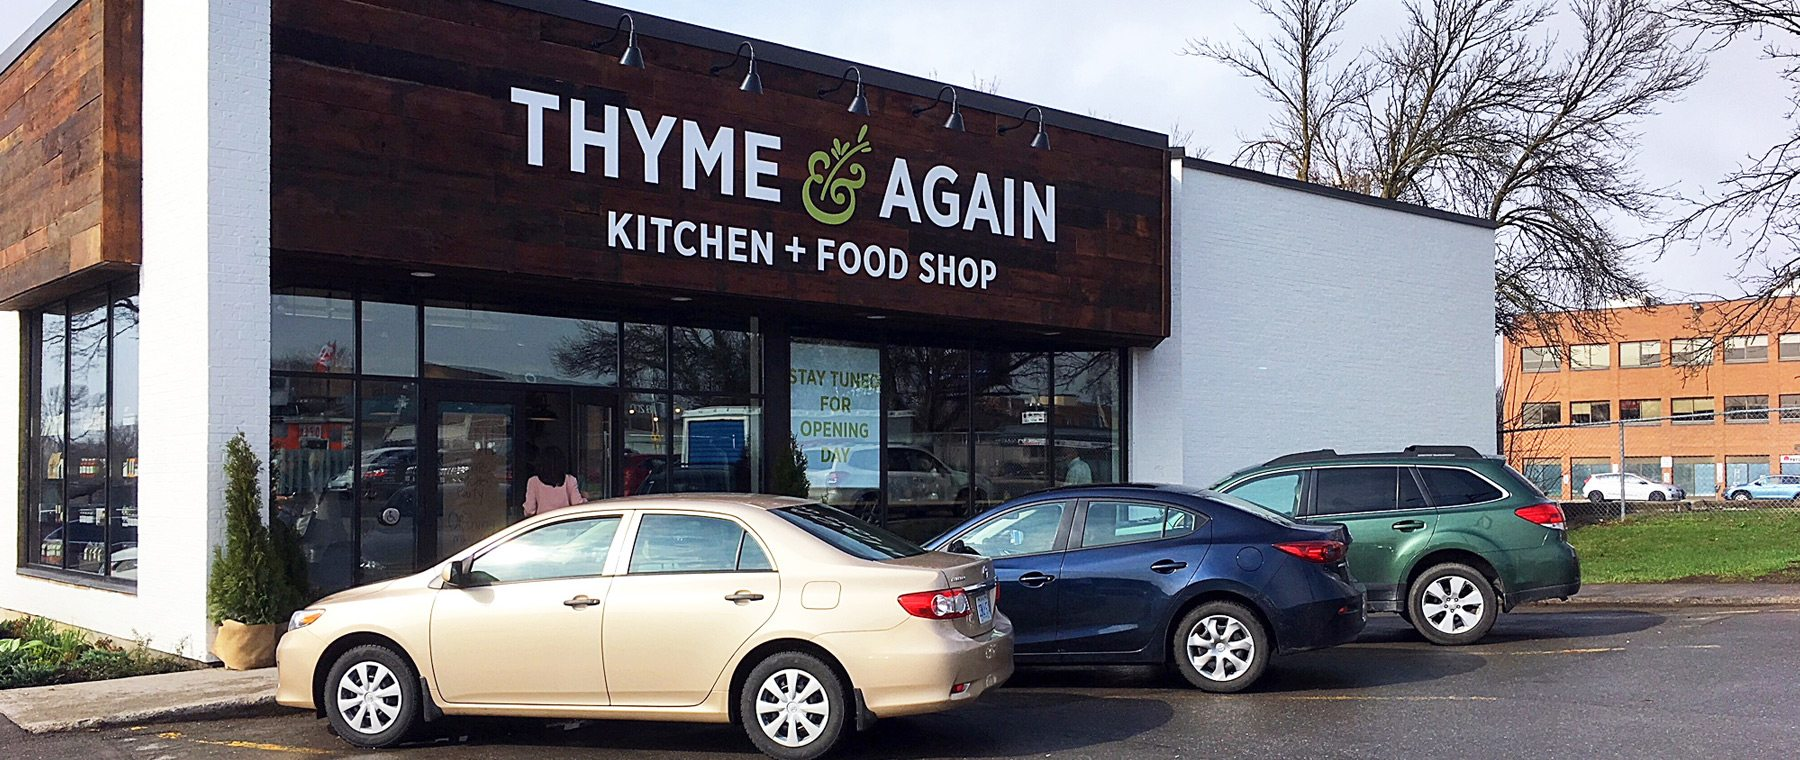 One more Thyme — Beckta's former chef Michael Moffatt helms second Thyme & Again (Here's what he's cooking up)